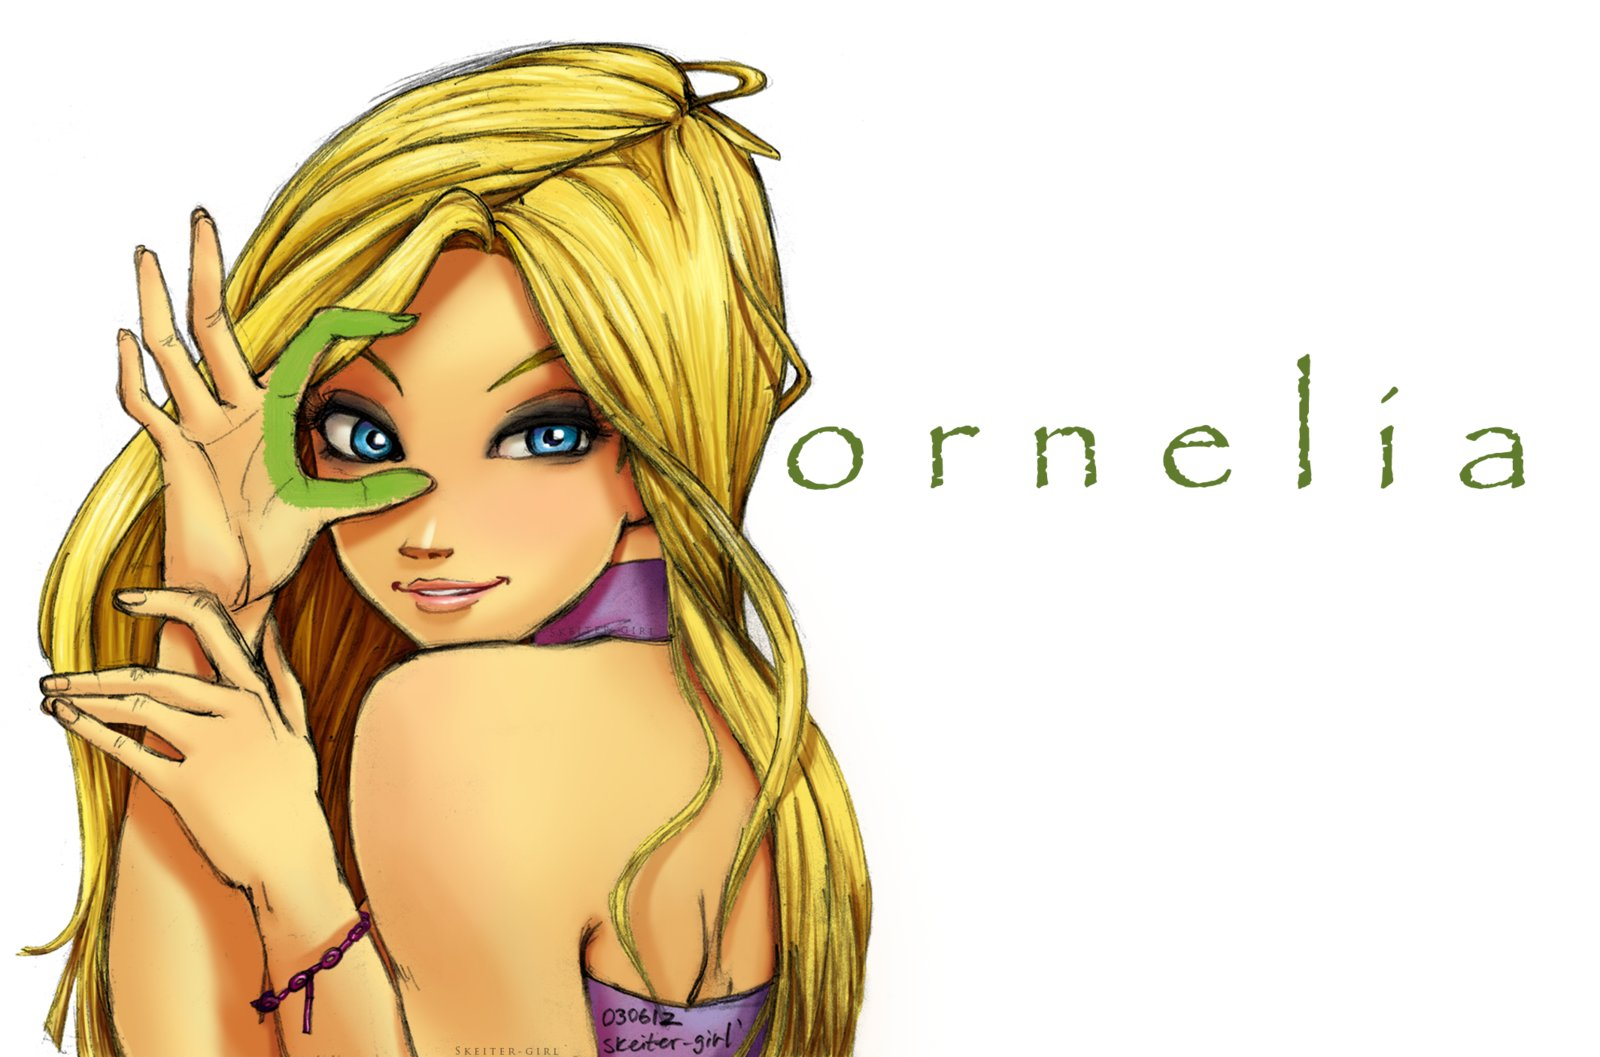 cornelia dating site Cornelia dahlgren: cornelia is martyn(phil's brother)'s girlfriend she's a singer from sweden she is 35 years old and has been dating martyn for quite some time.